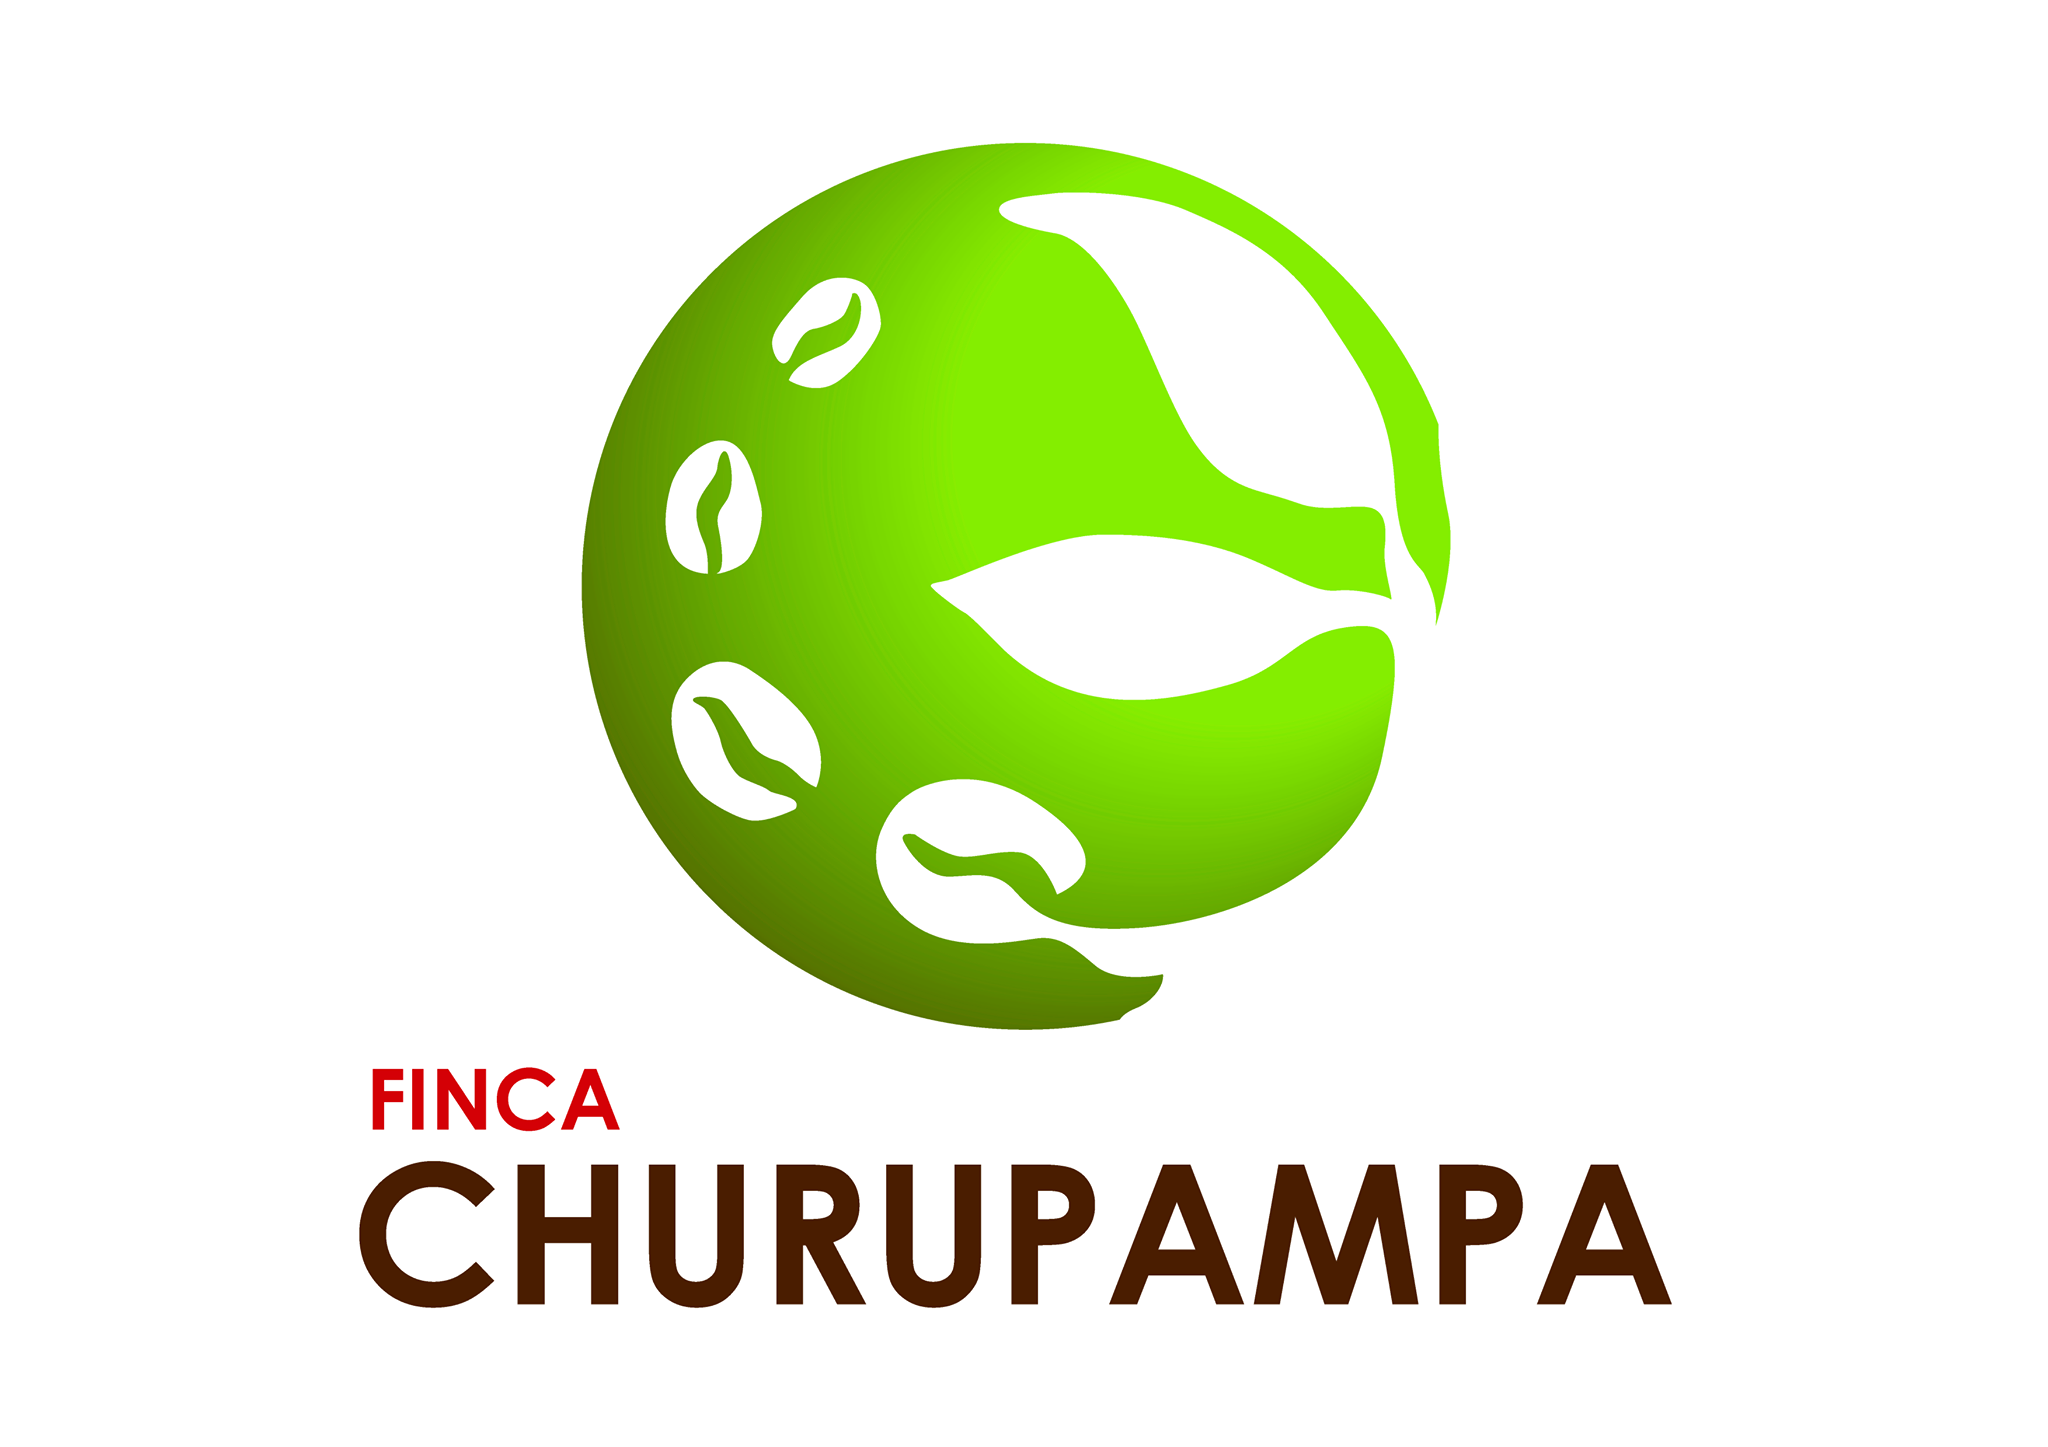 Finca Churupampa is an independent exporter and social business from Chirinos, Peru.